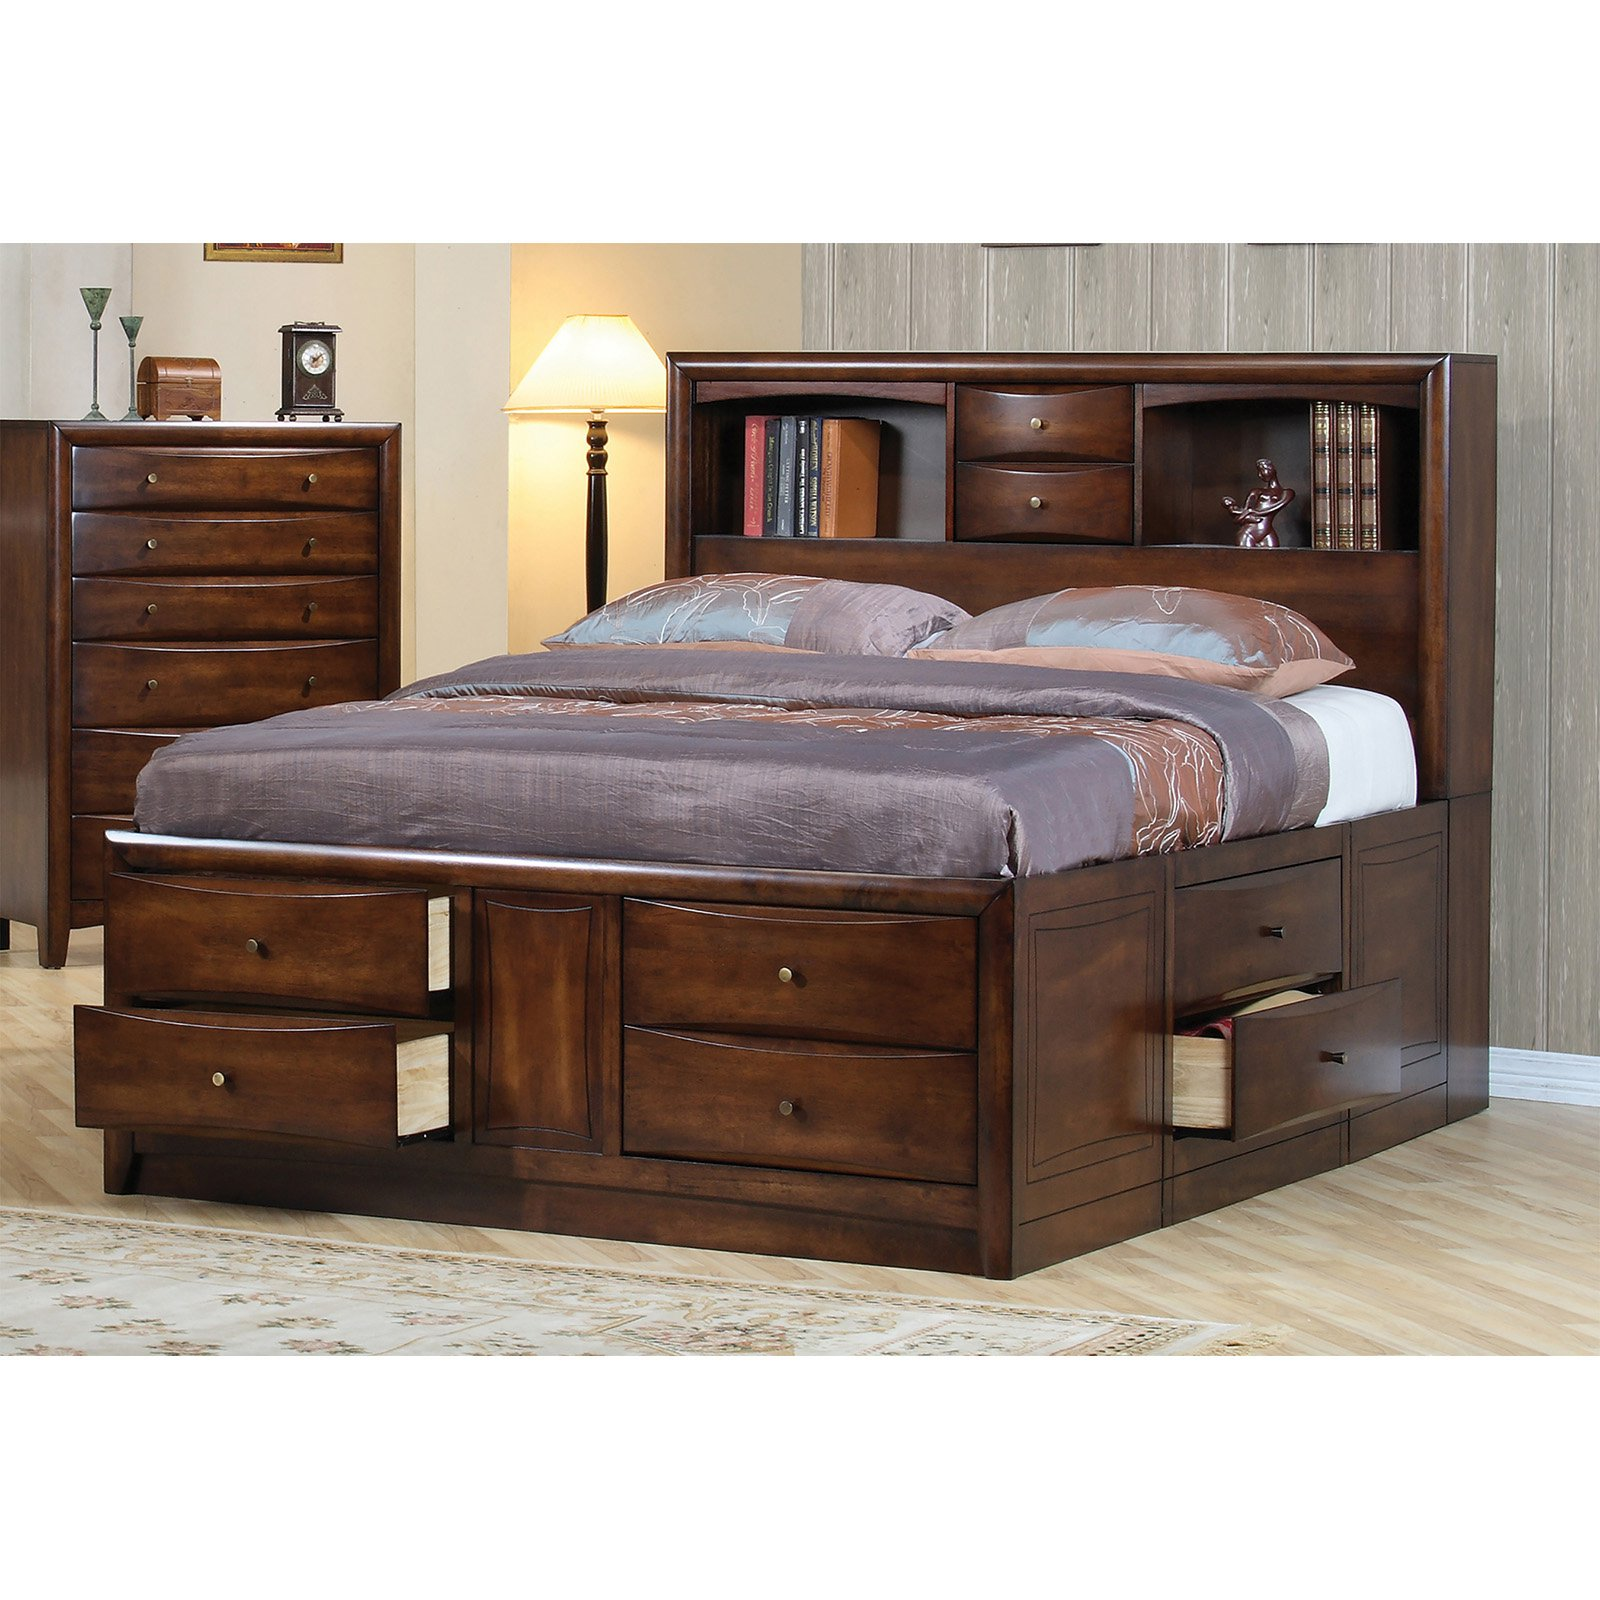 Coaster Furniture Louis Hillary Bookcase Storage Bed